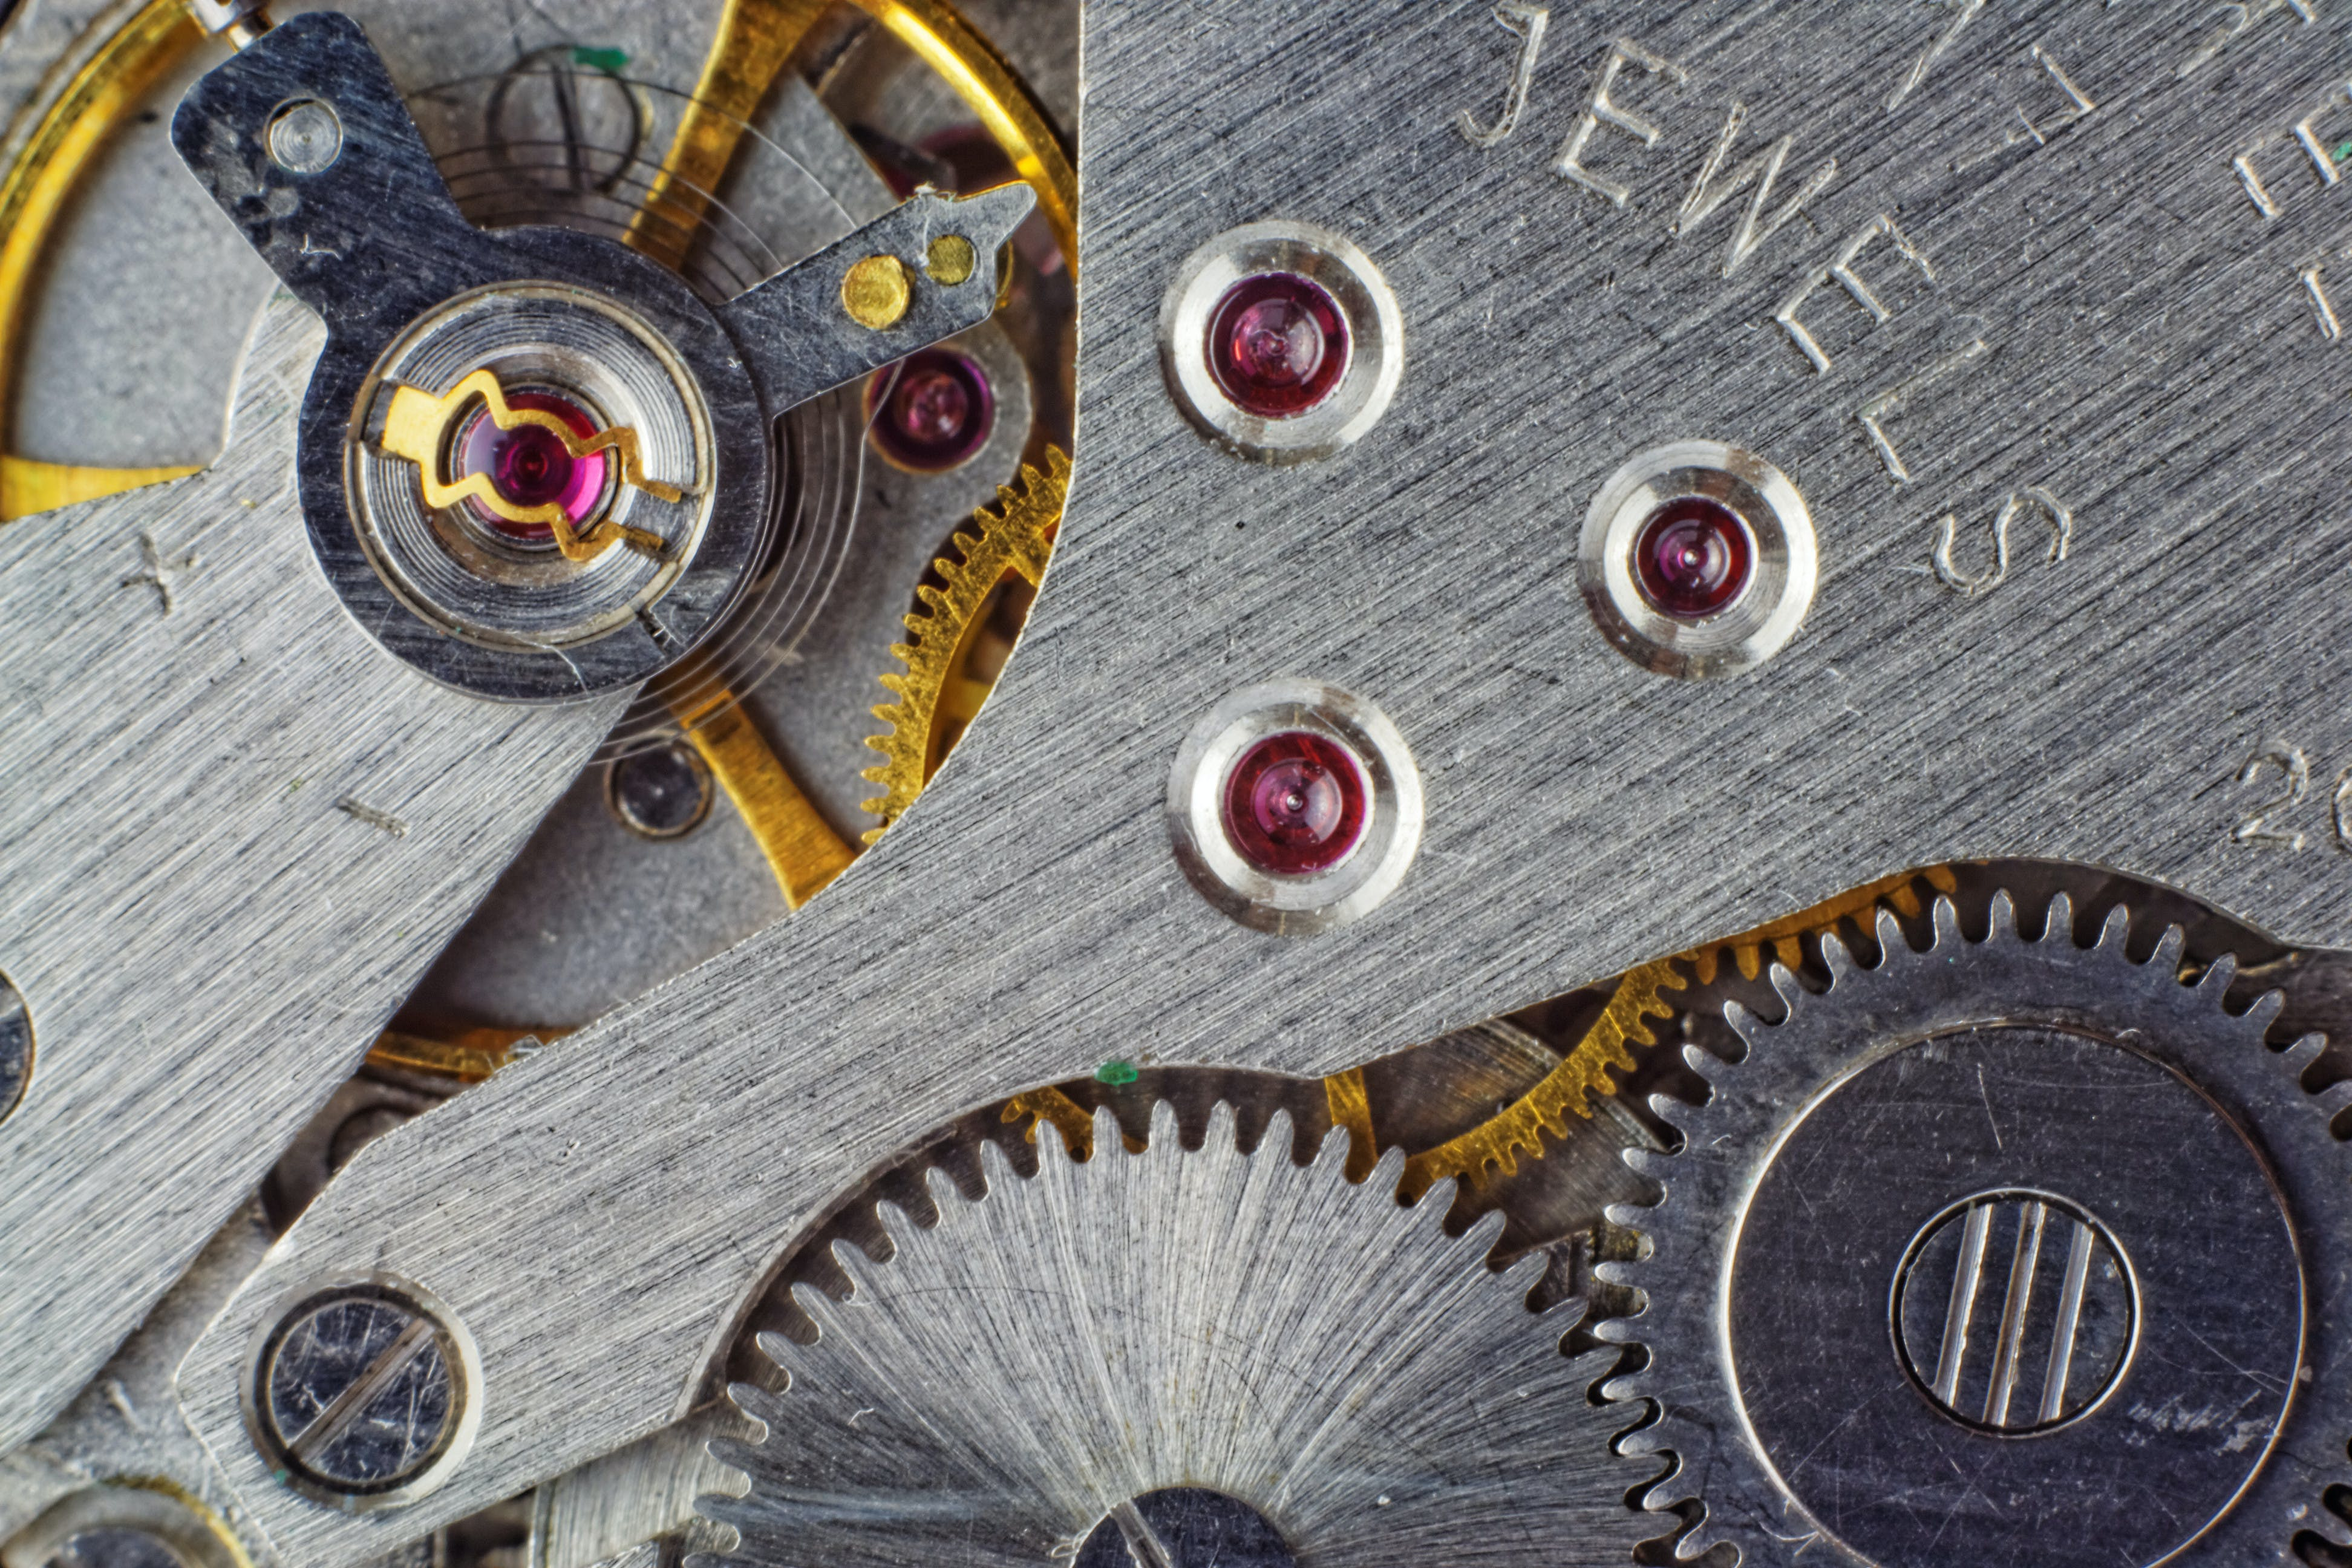 Silver-and-gold-colored Watch Gears